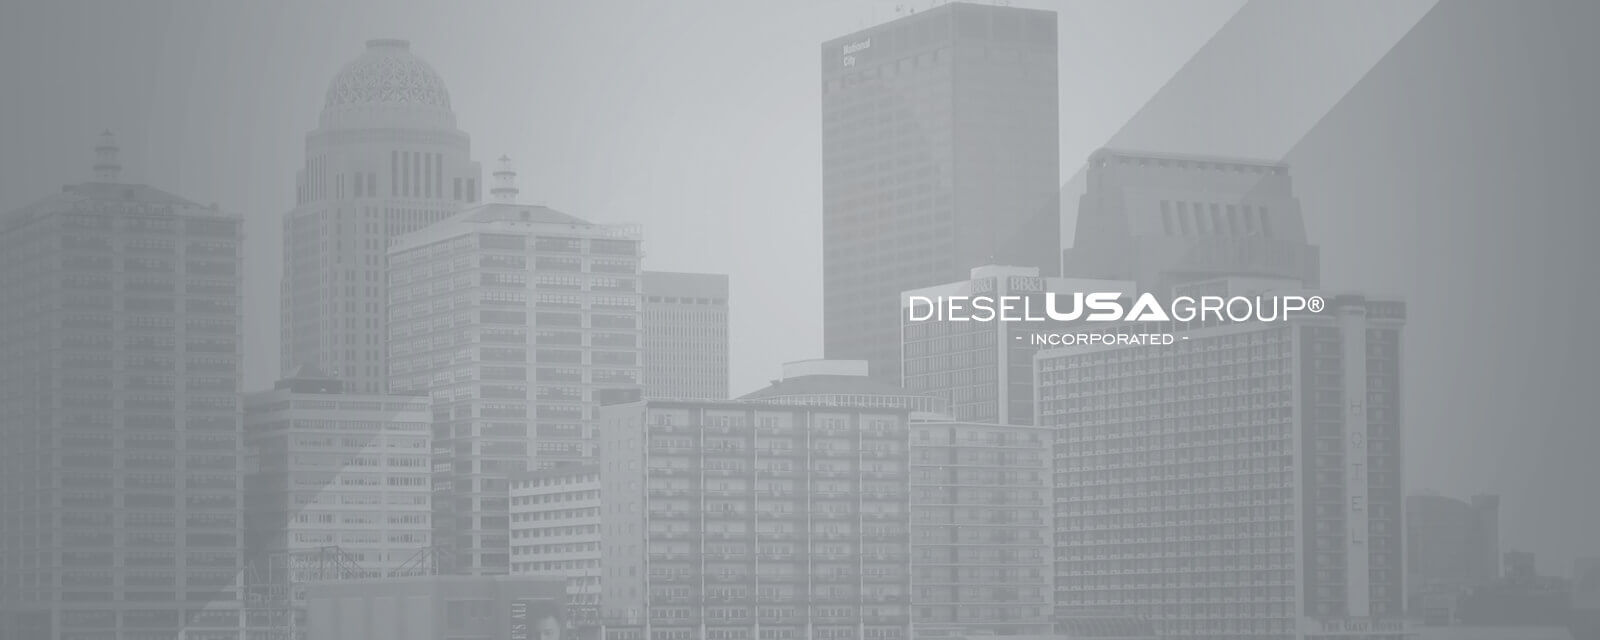 Diesel USA Group, Services